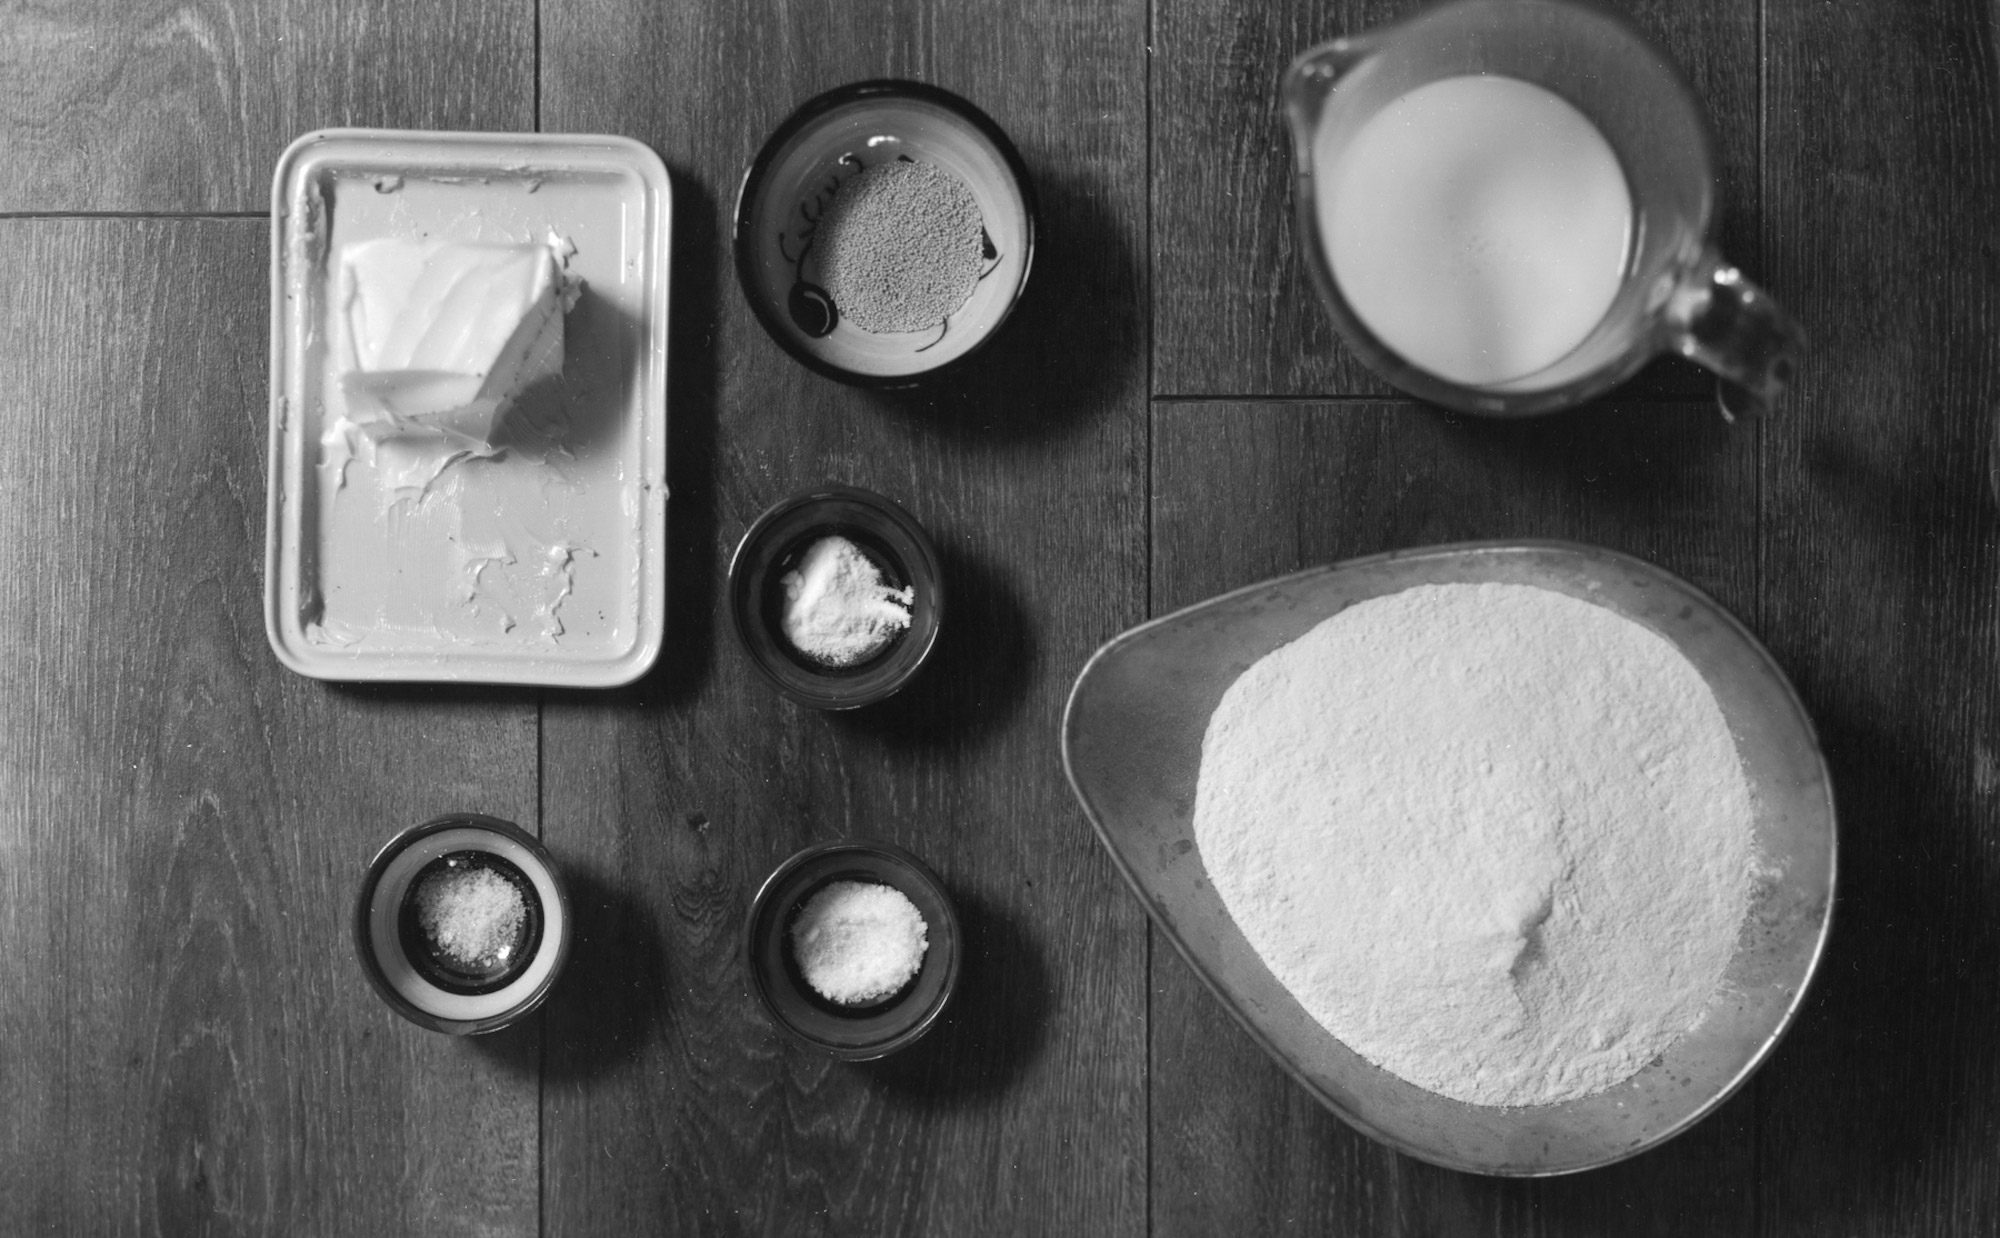 The ingredients - Ilford Pearl 8x10